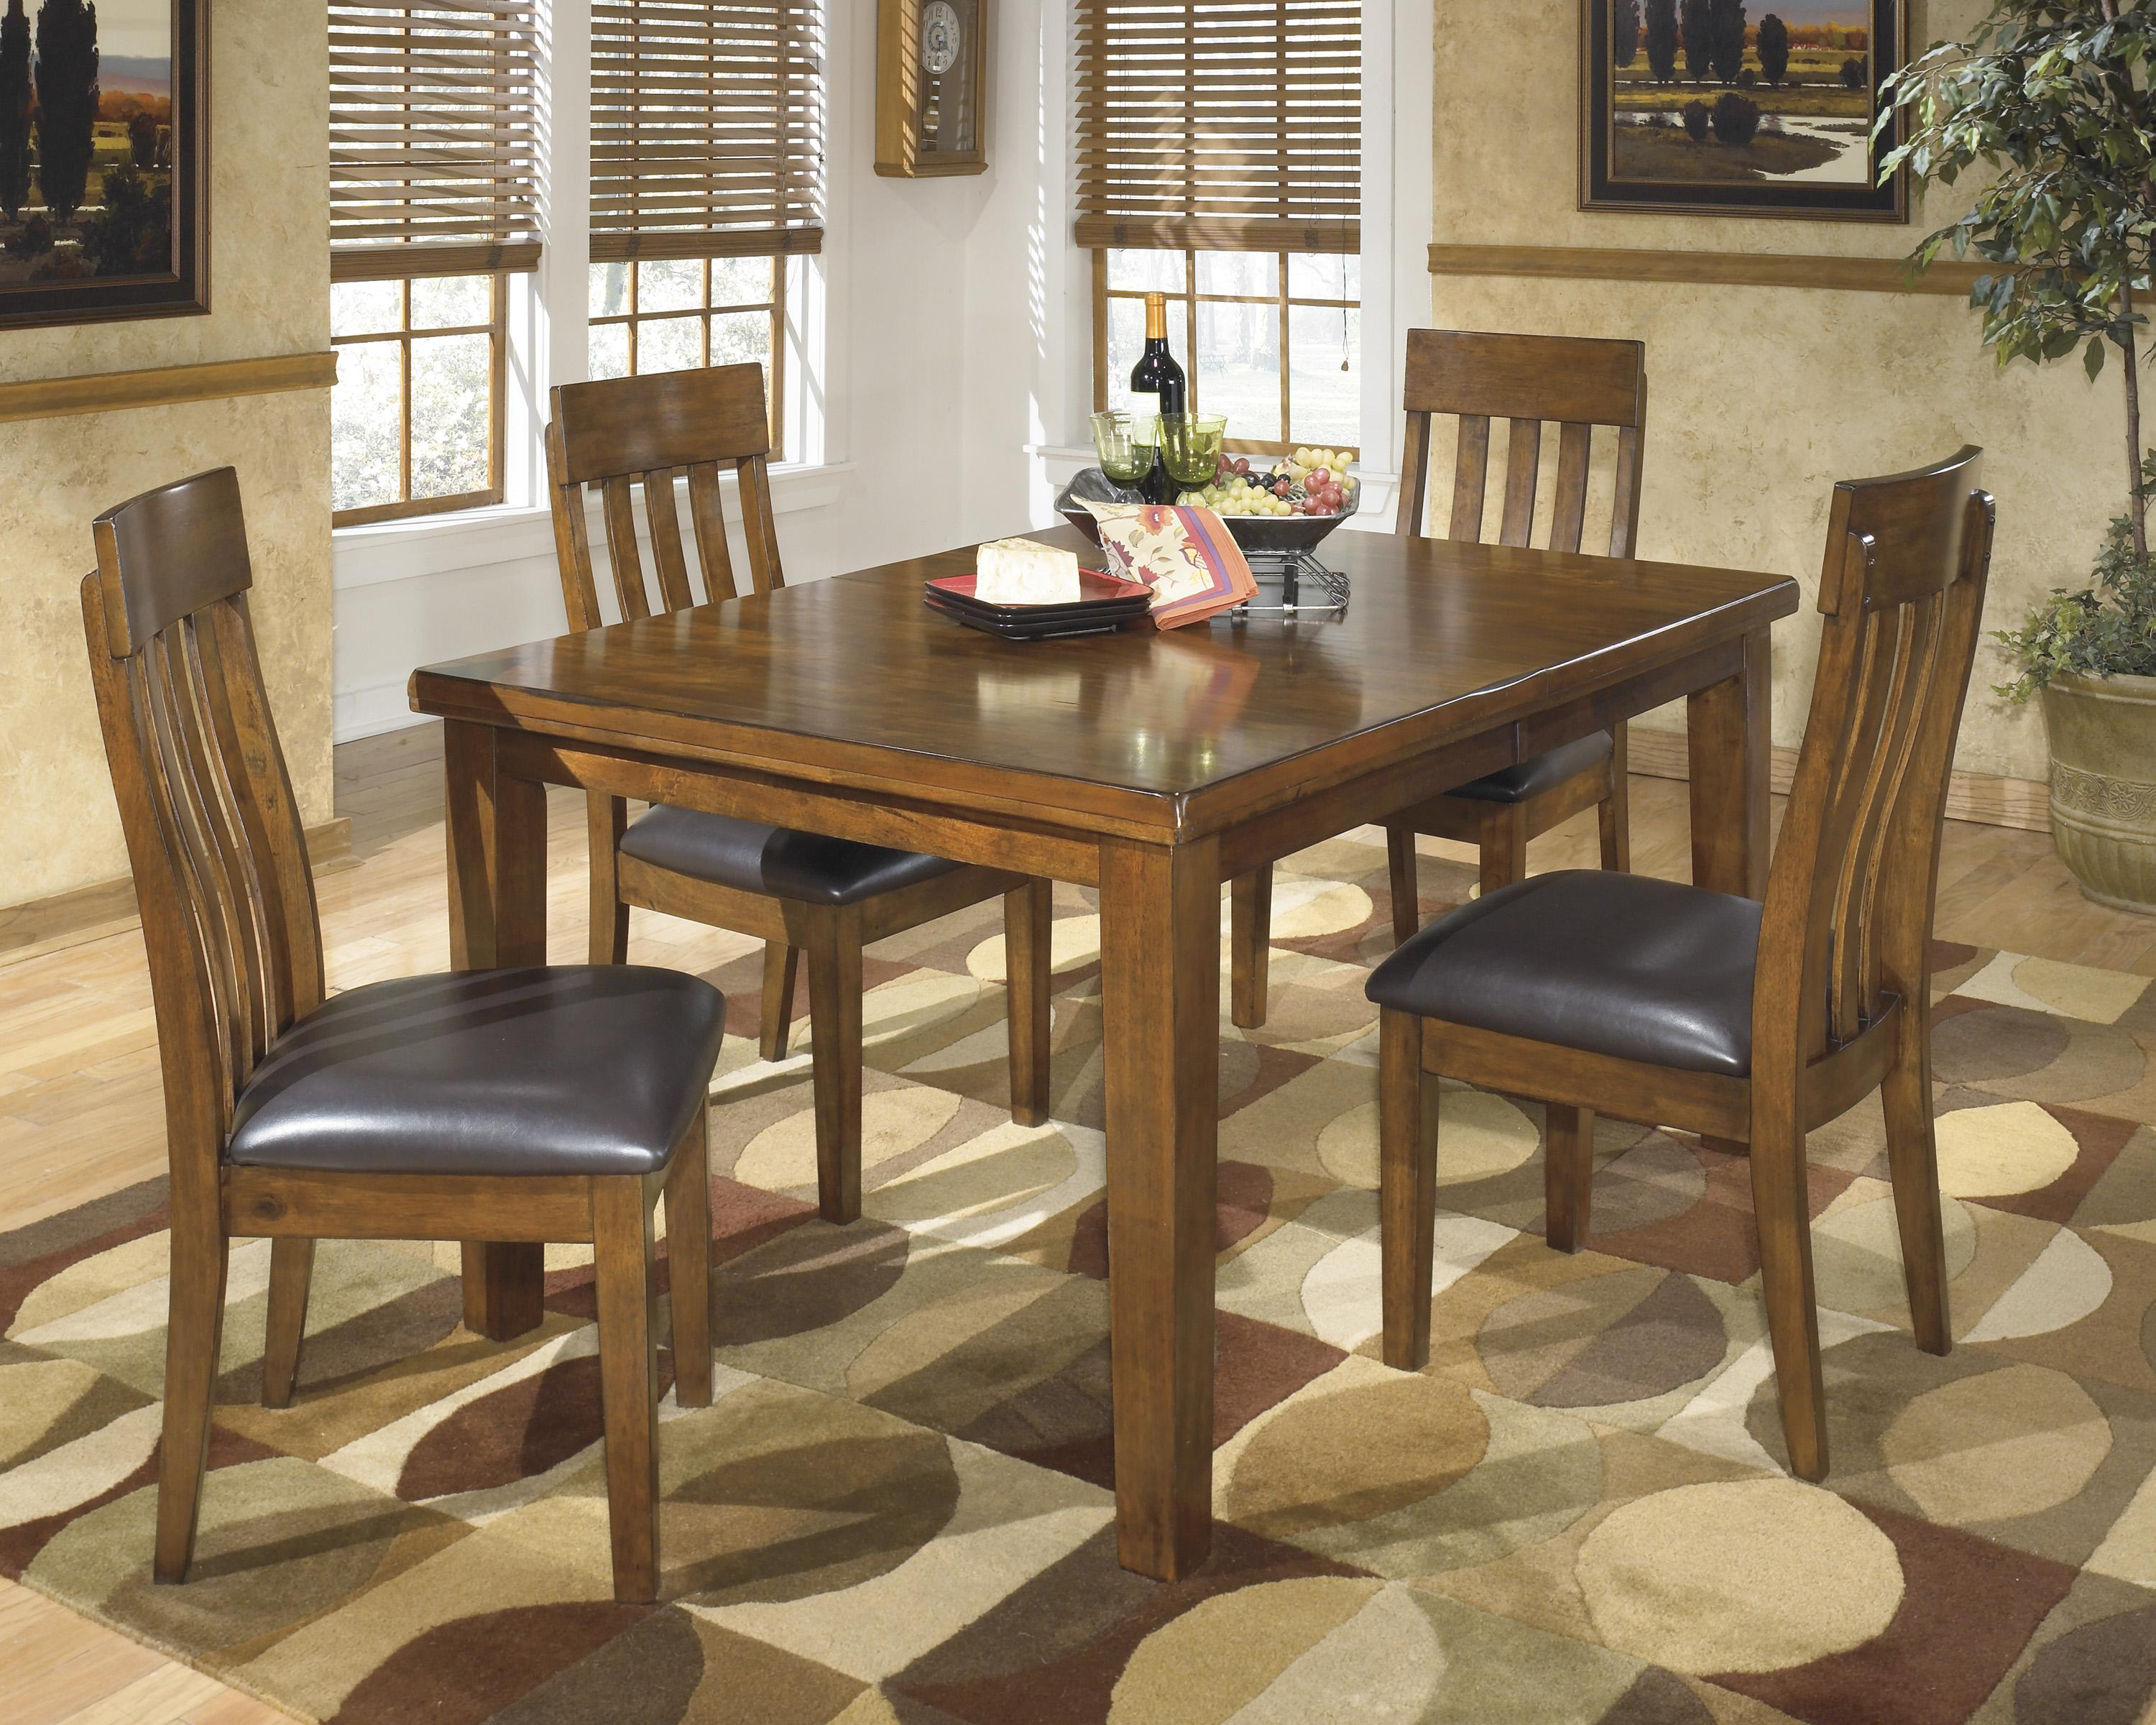 Signature Design by Ashley Ralene 5 Pc Dining Set - Item Number: D594-35+4x01